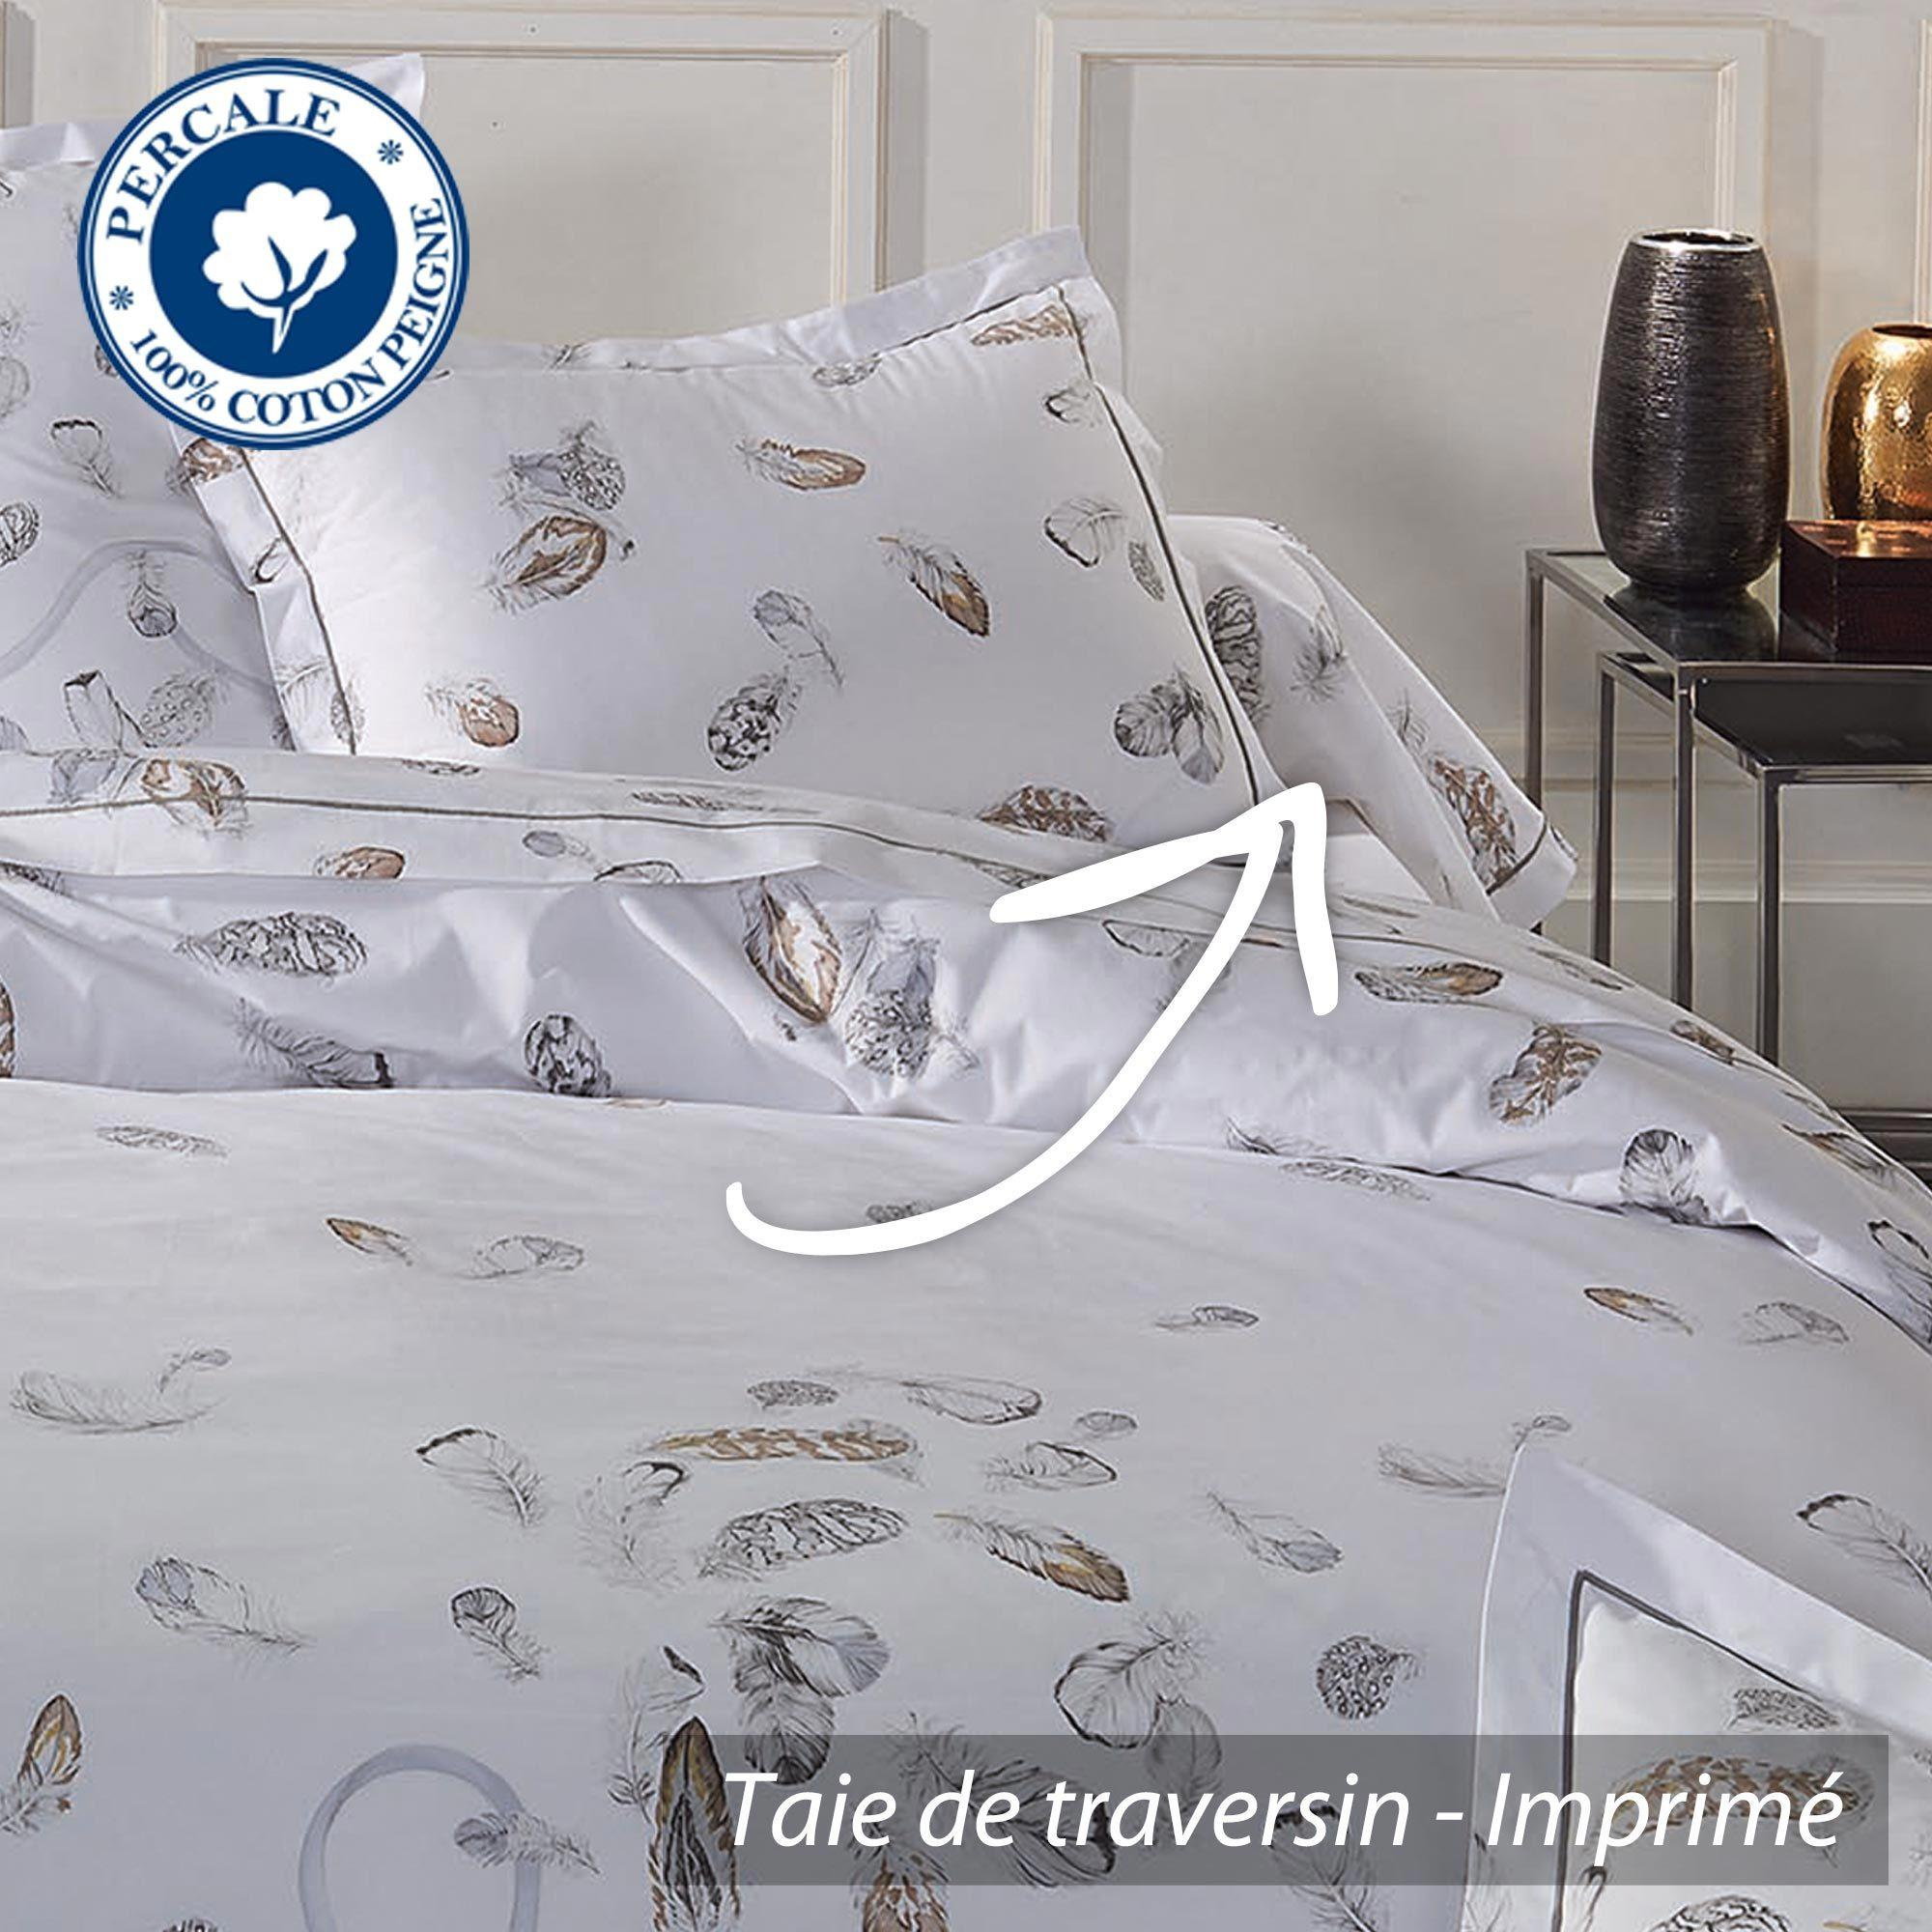 taie de traversin percale pur coton peign 200x43 cm plumes linnea vente de linge de maison. Black Bedroom Furniture Sets. Home Design Ideas